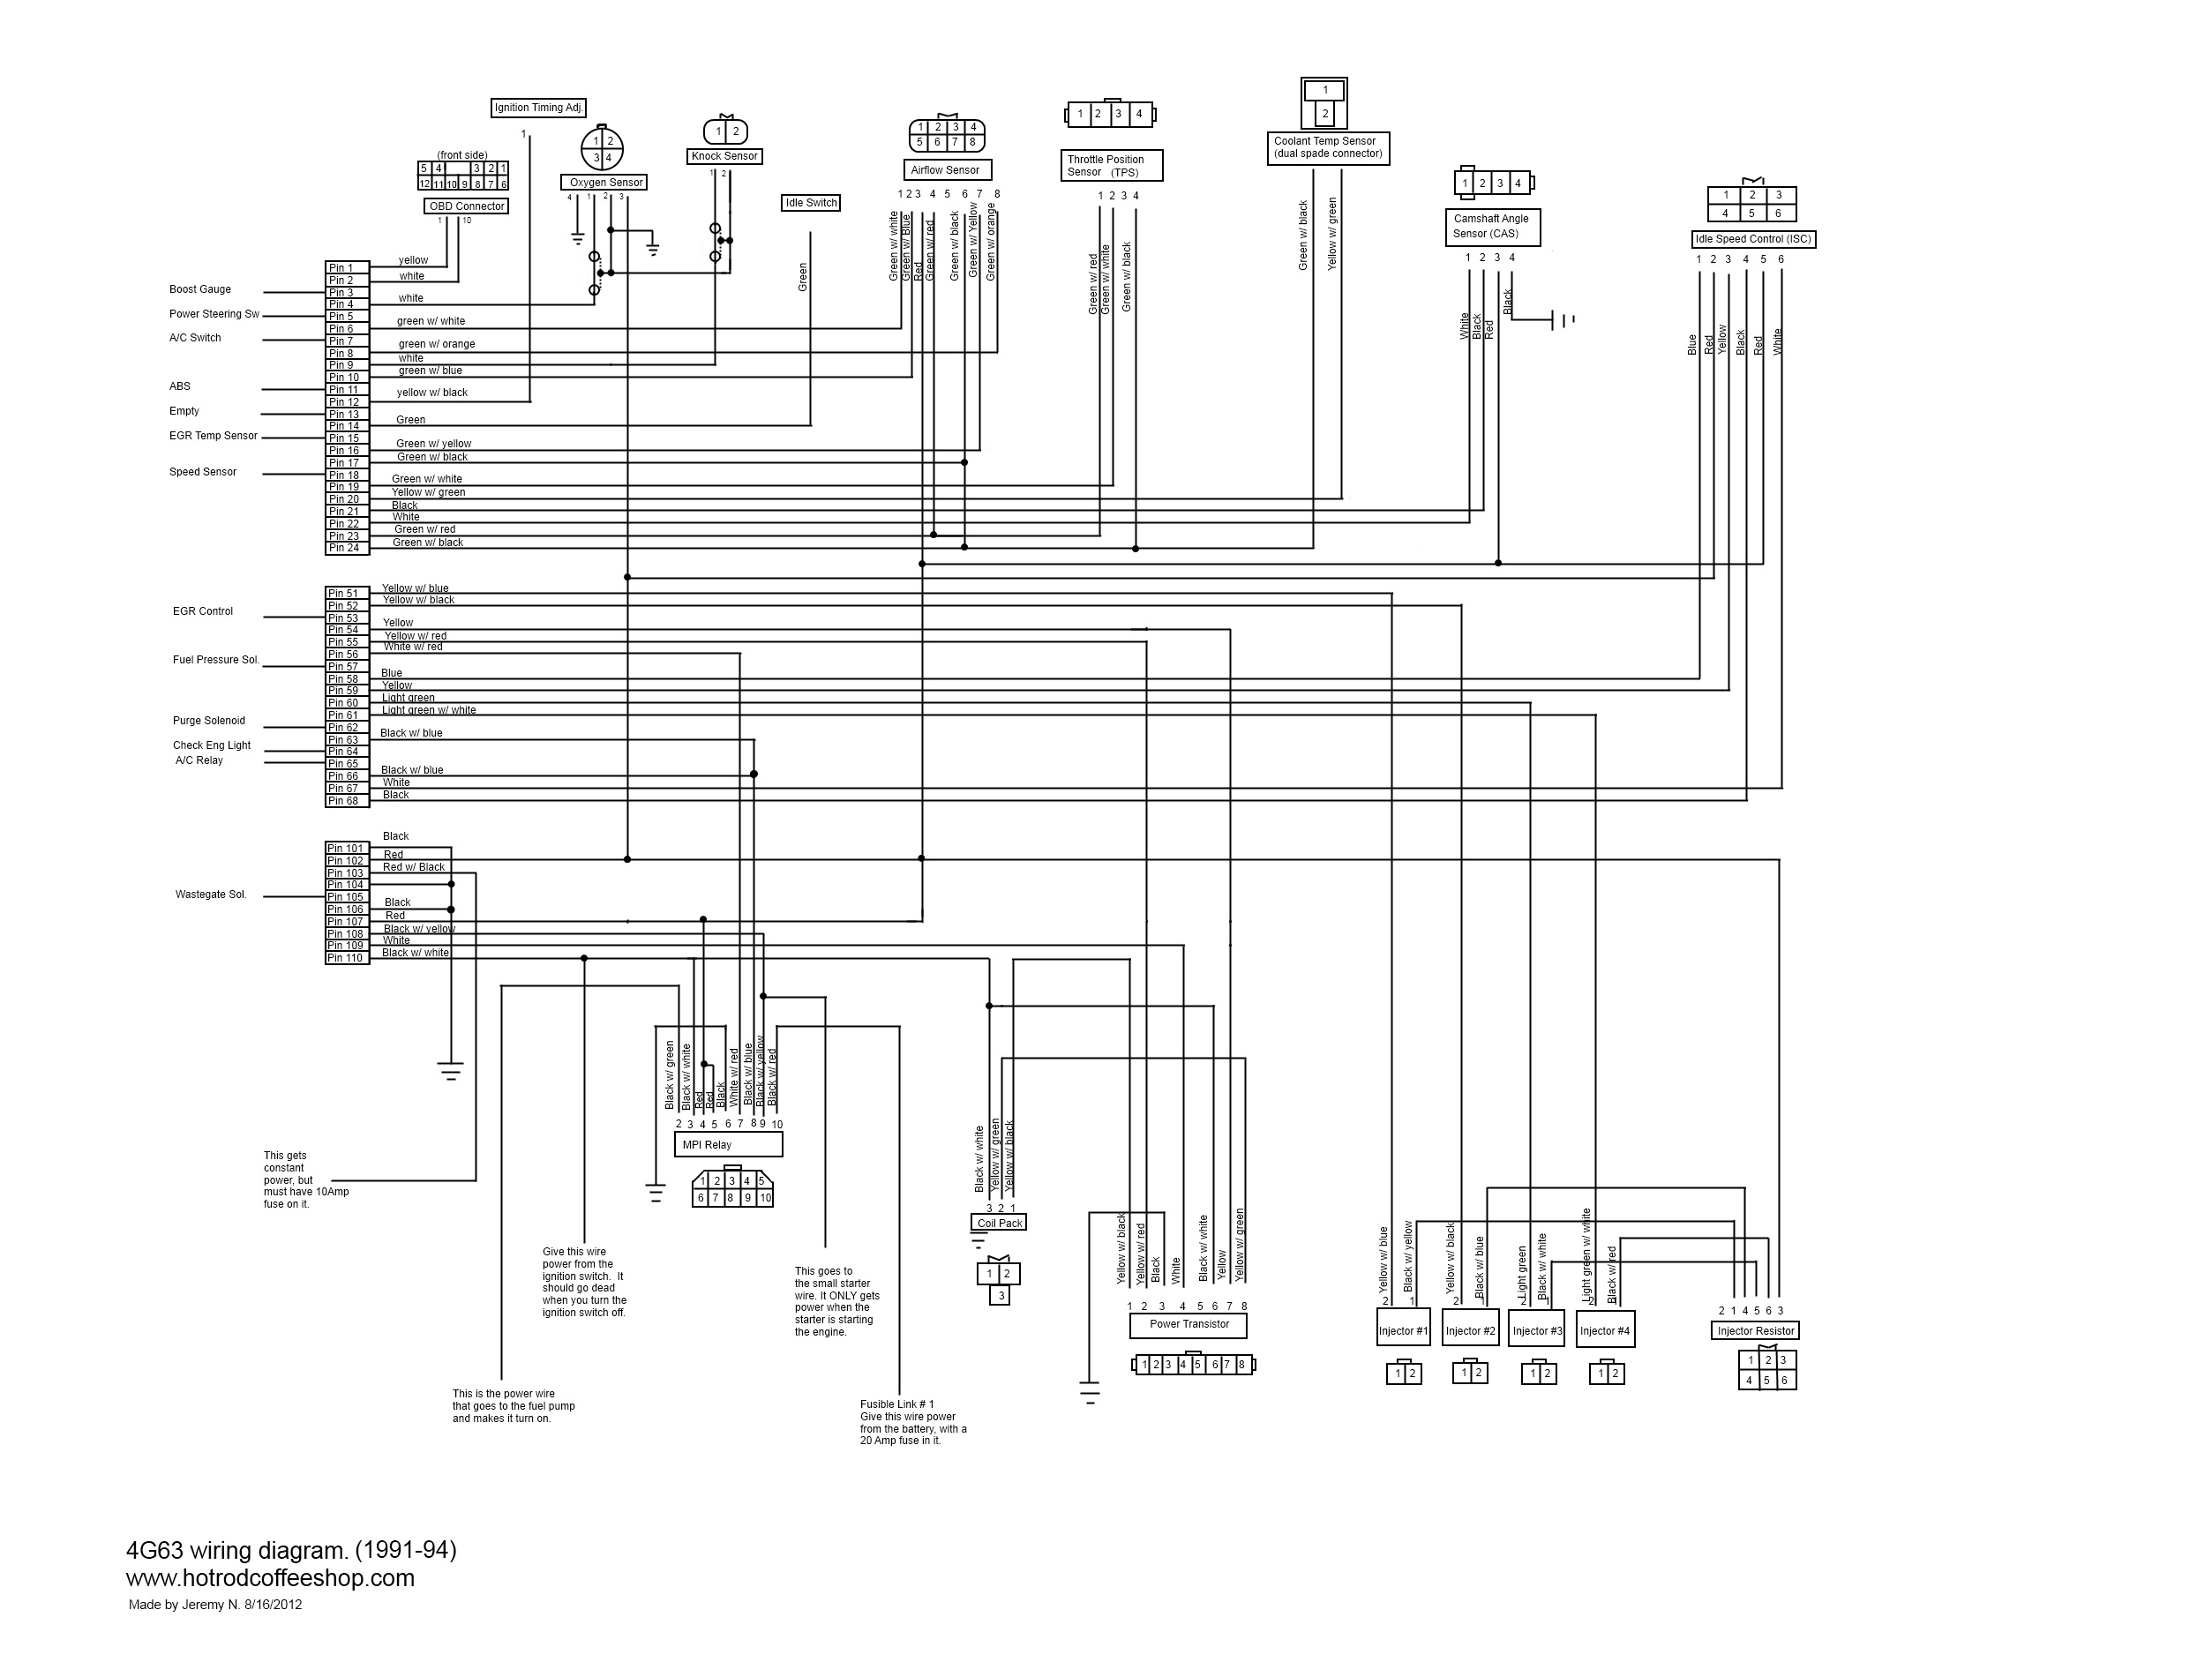 4g63ecudiagram_1 4g63 wiring diagrams schematics for engine swaps Electrical Socket at panicattacktreatment.co